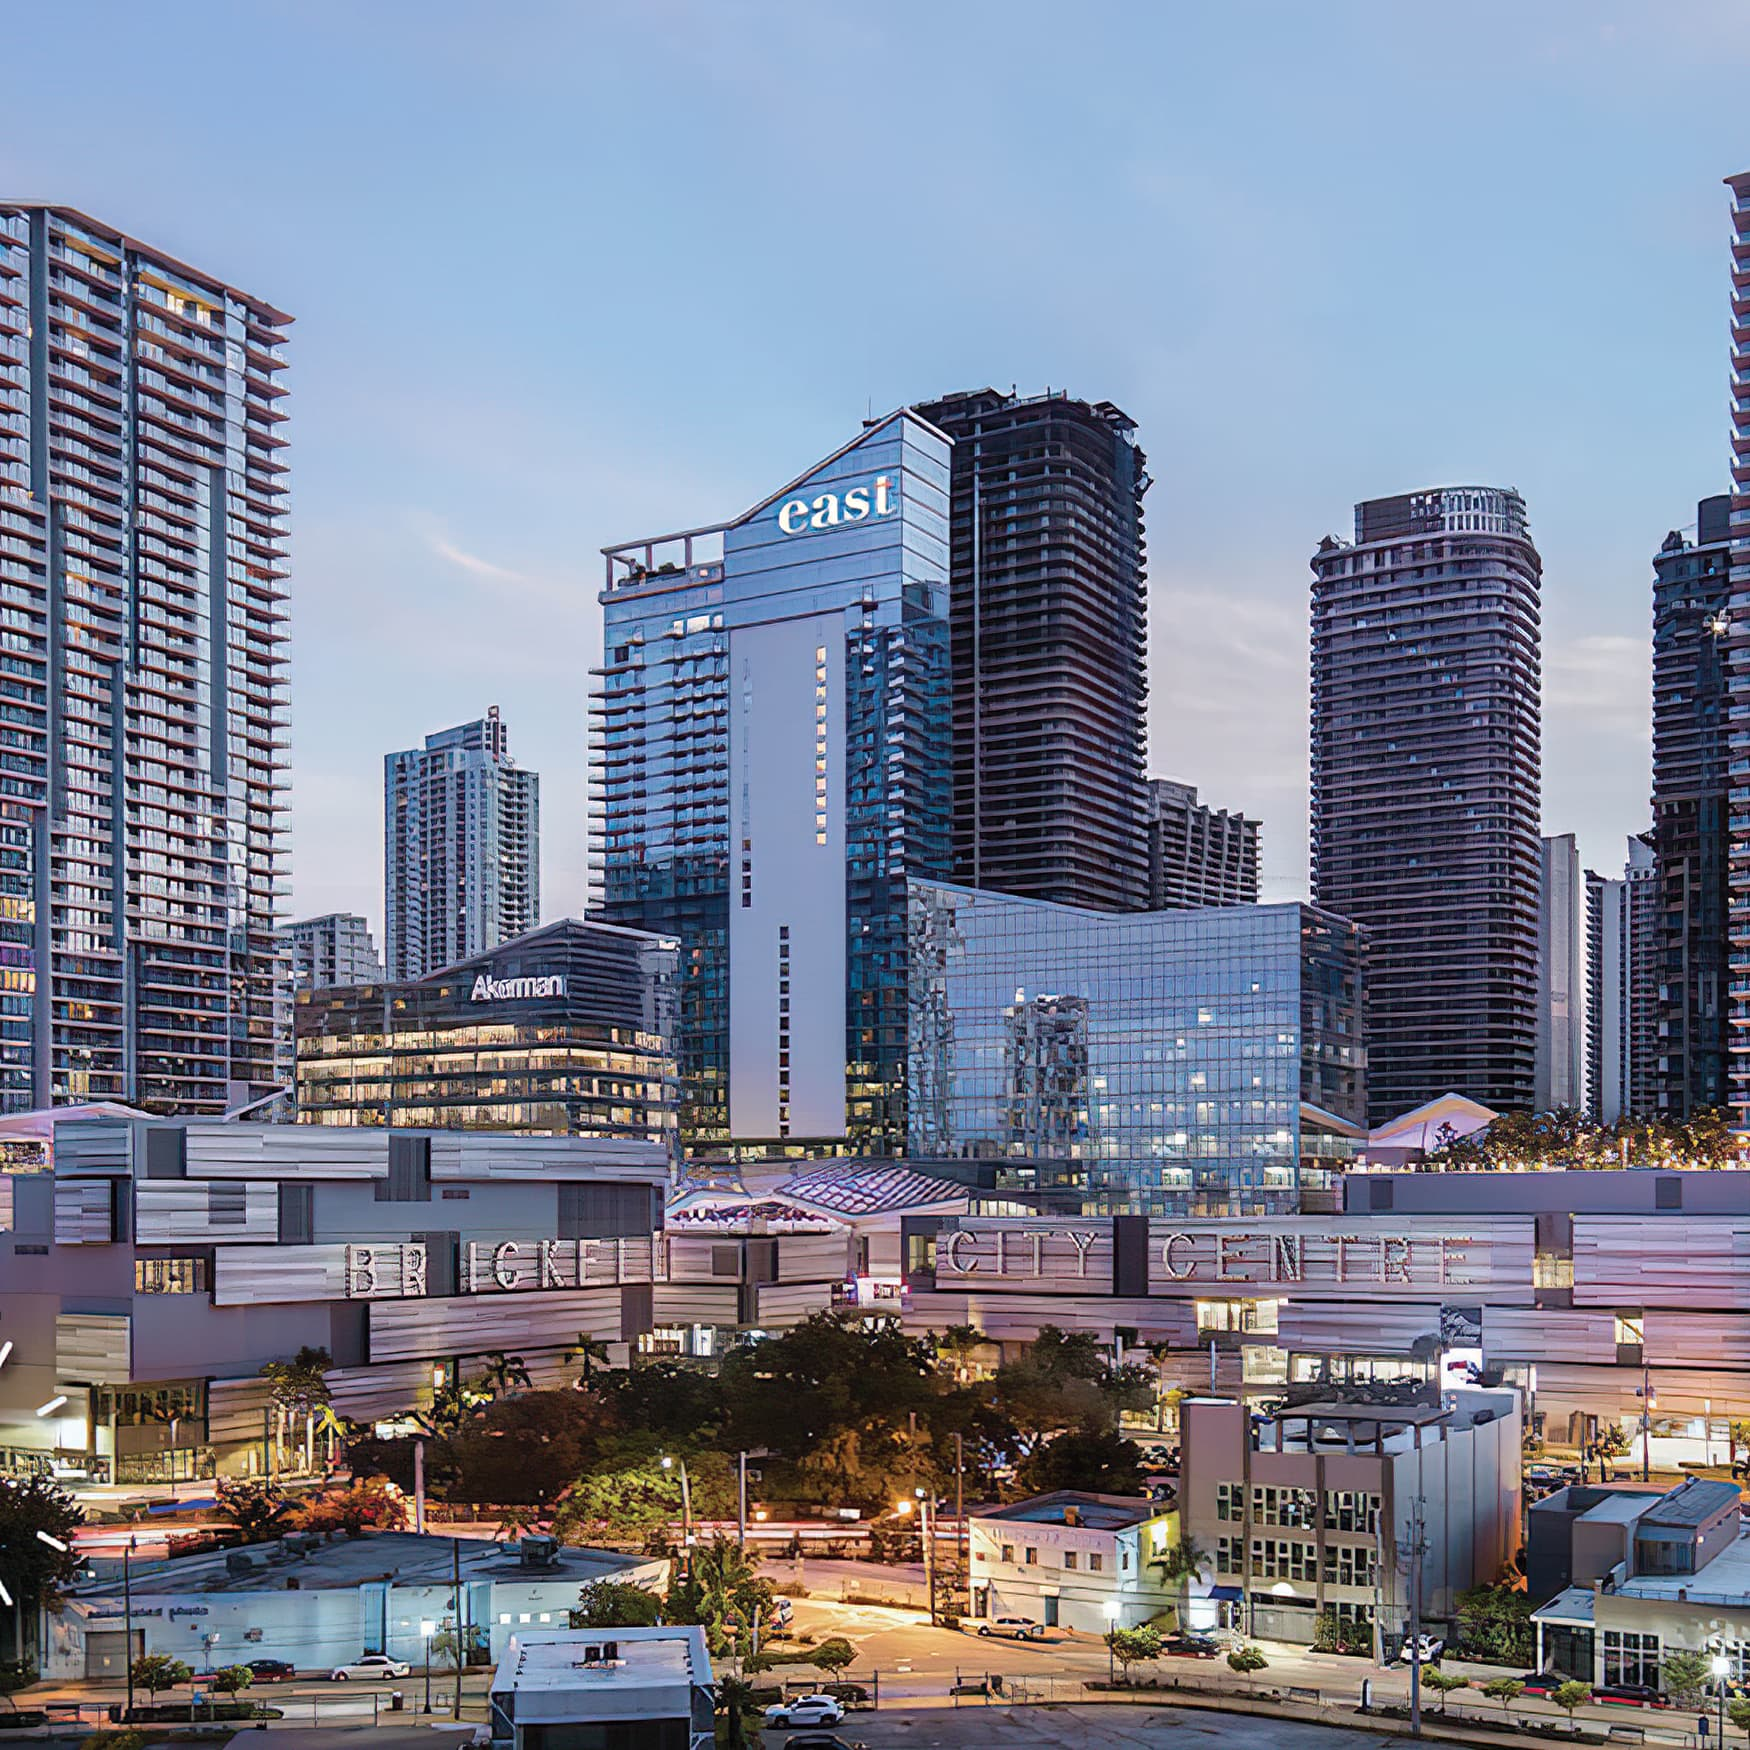 An image showing the urban context the Brickell City Center is located in.